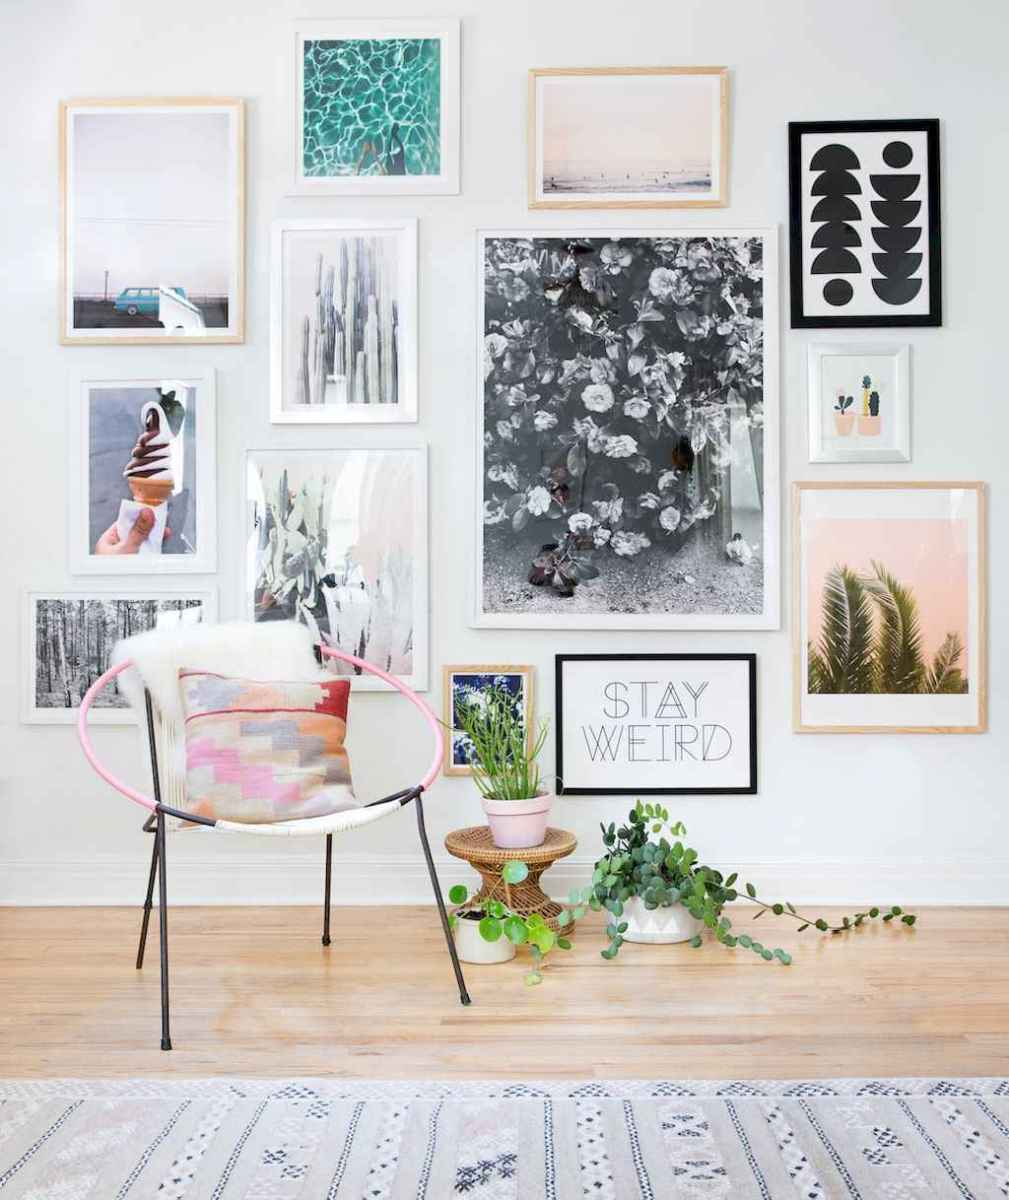 50 beautiful gallery wall ideas to show your photos (19)